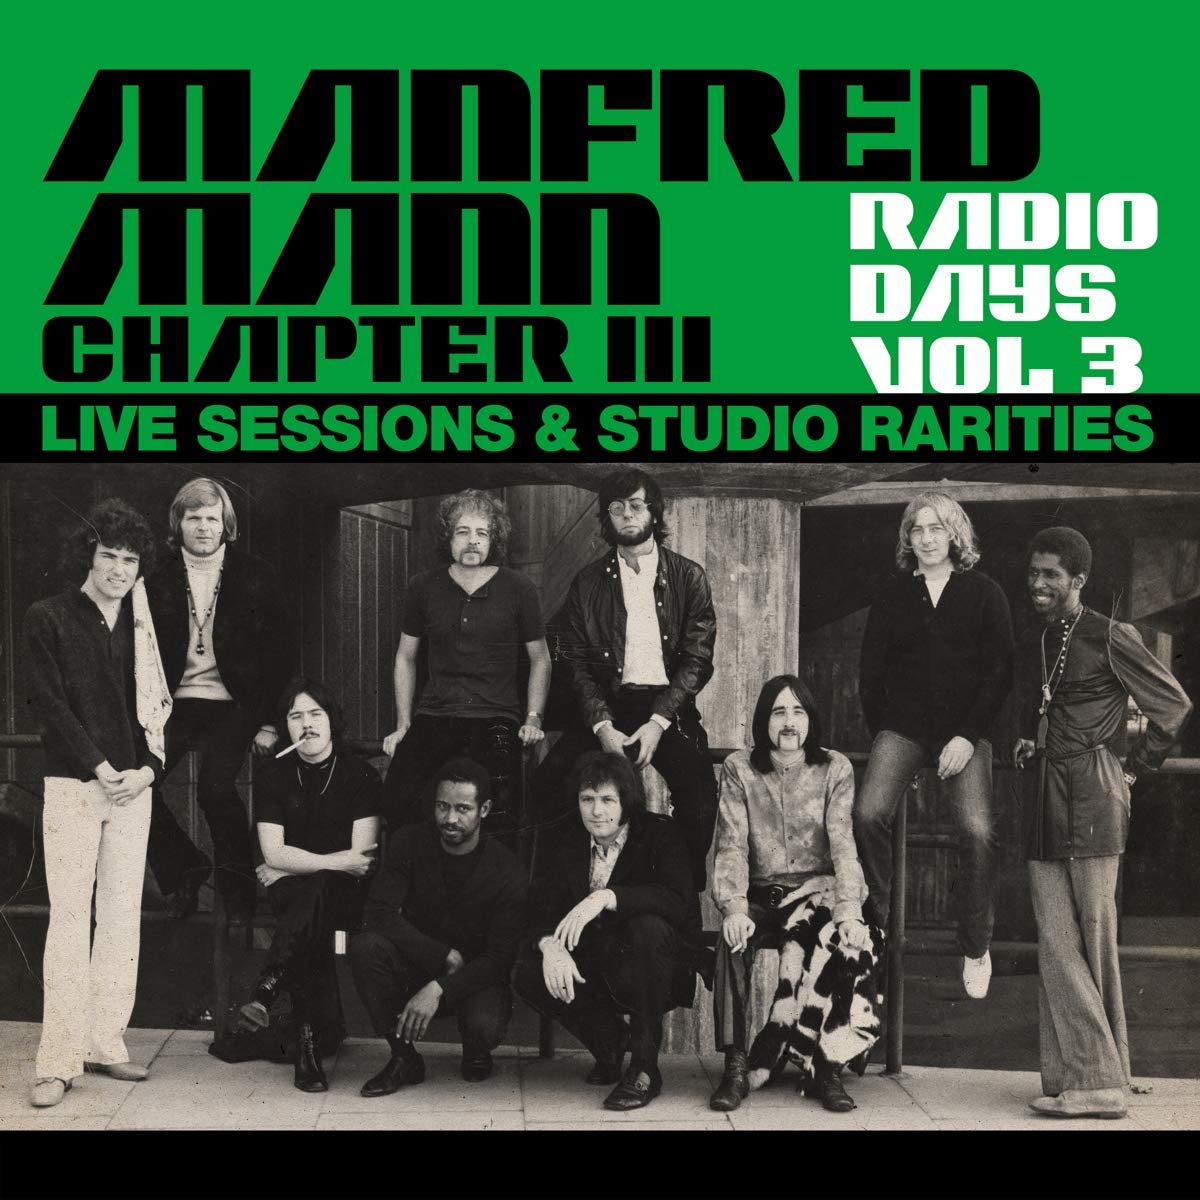 Manfred Mann Chapter III — Radio Days Vol 3 - Live Sessions & Studio Rarities